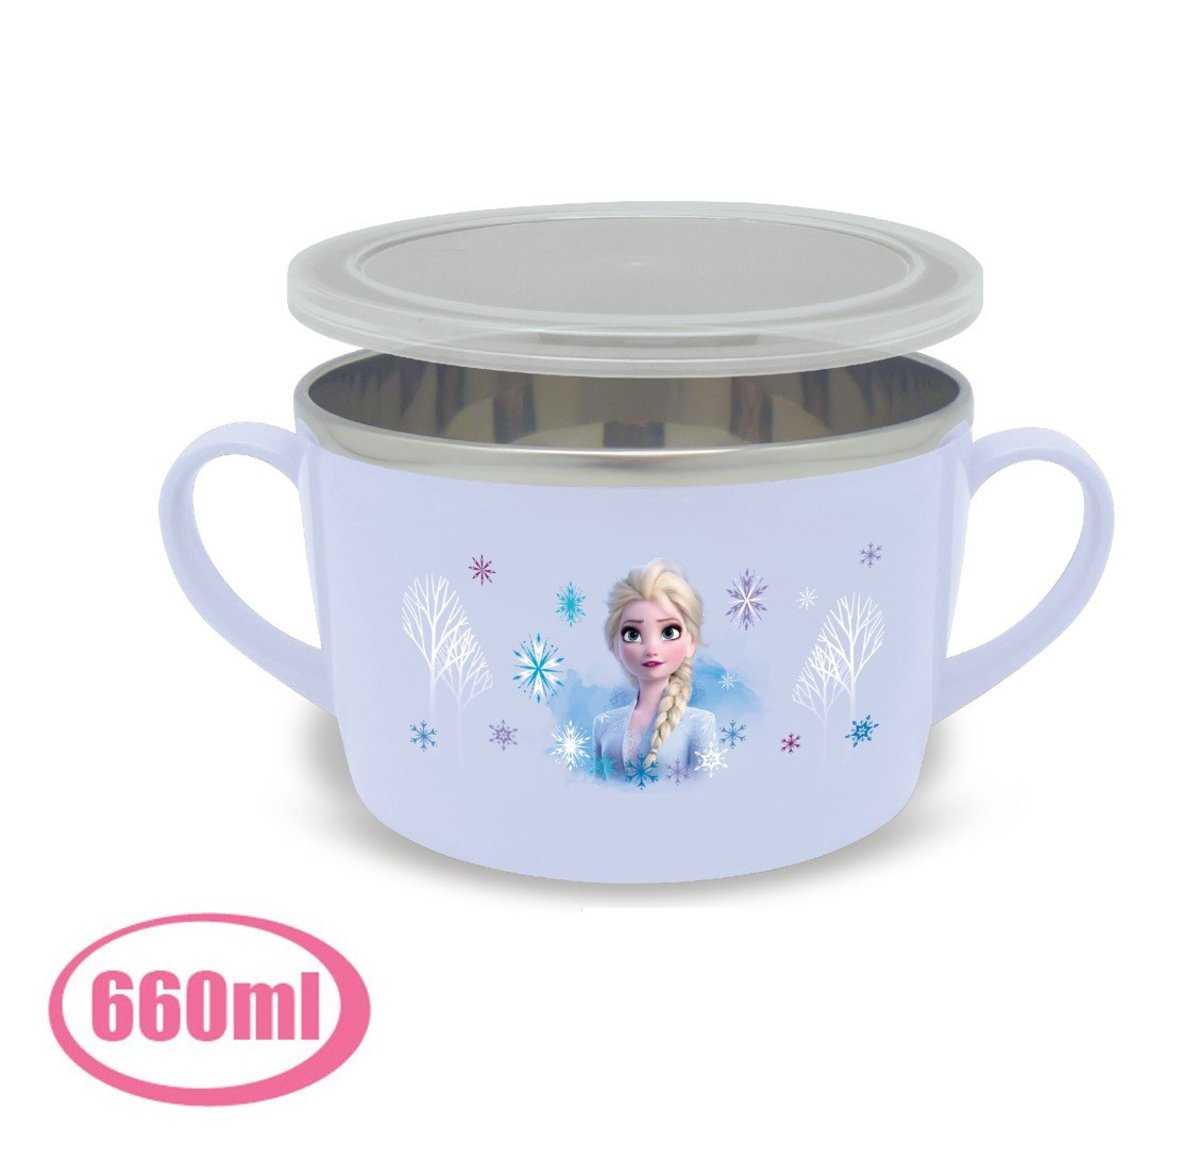 stainless steel  bowl(660ml)  (Licensed by Disney)